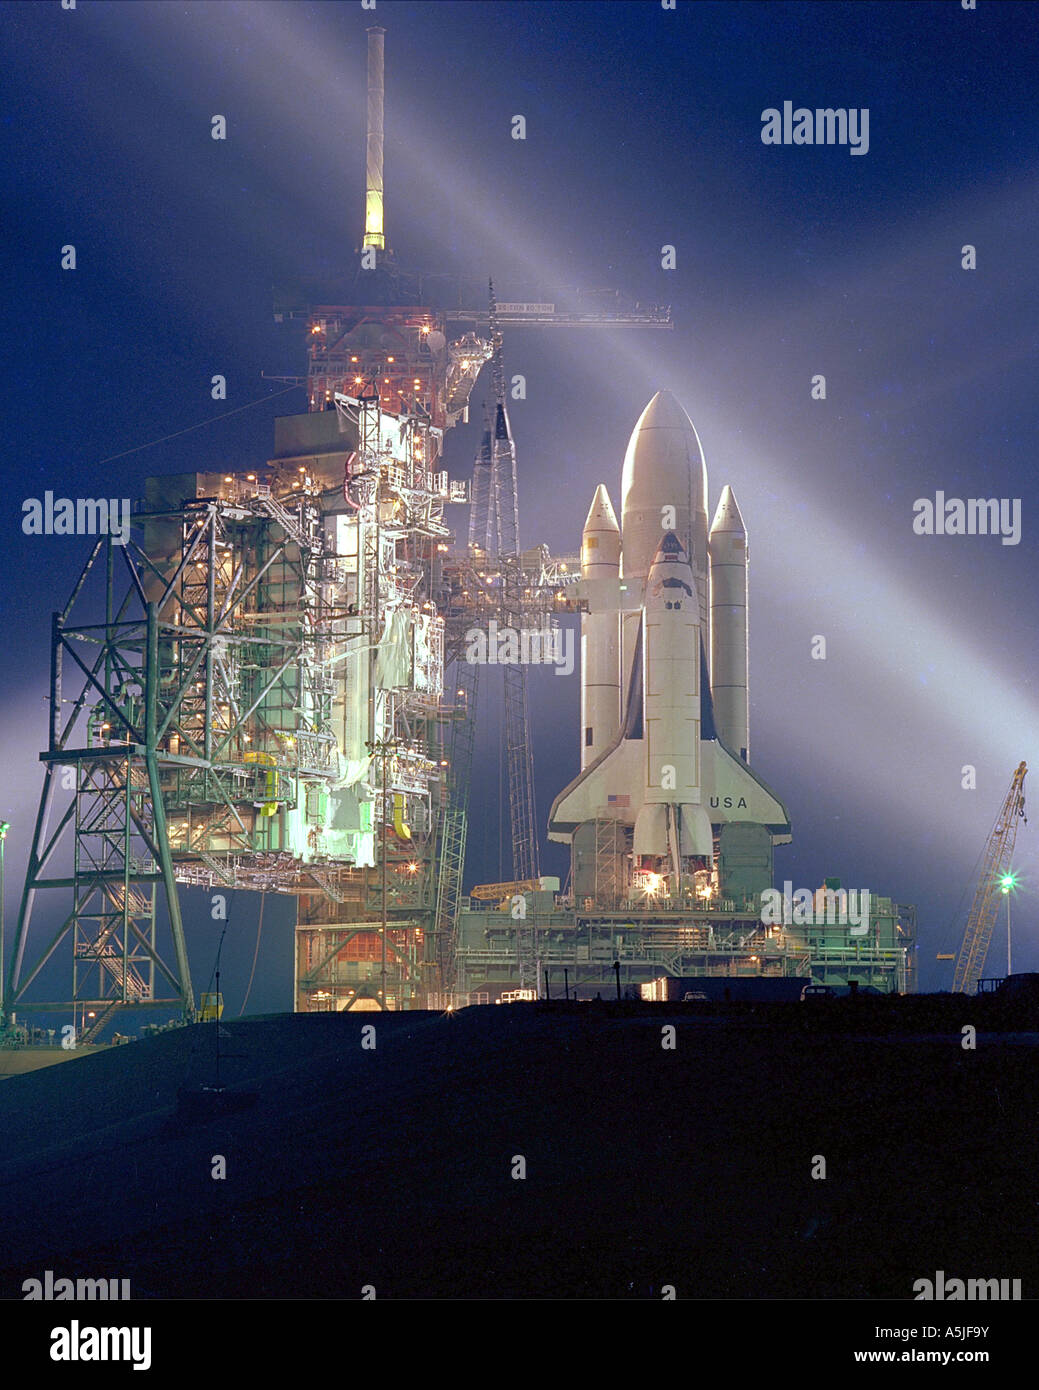 Space Shuttle, STS-1, at Kennedy Space Center Launch Pad. Date: 3/5/1981 - Stock Image